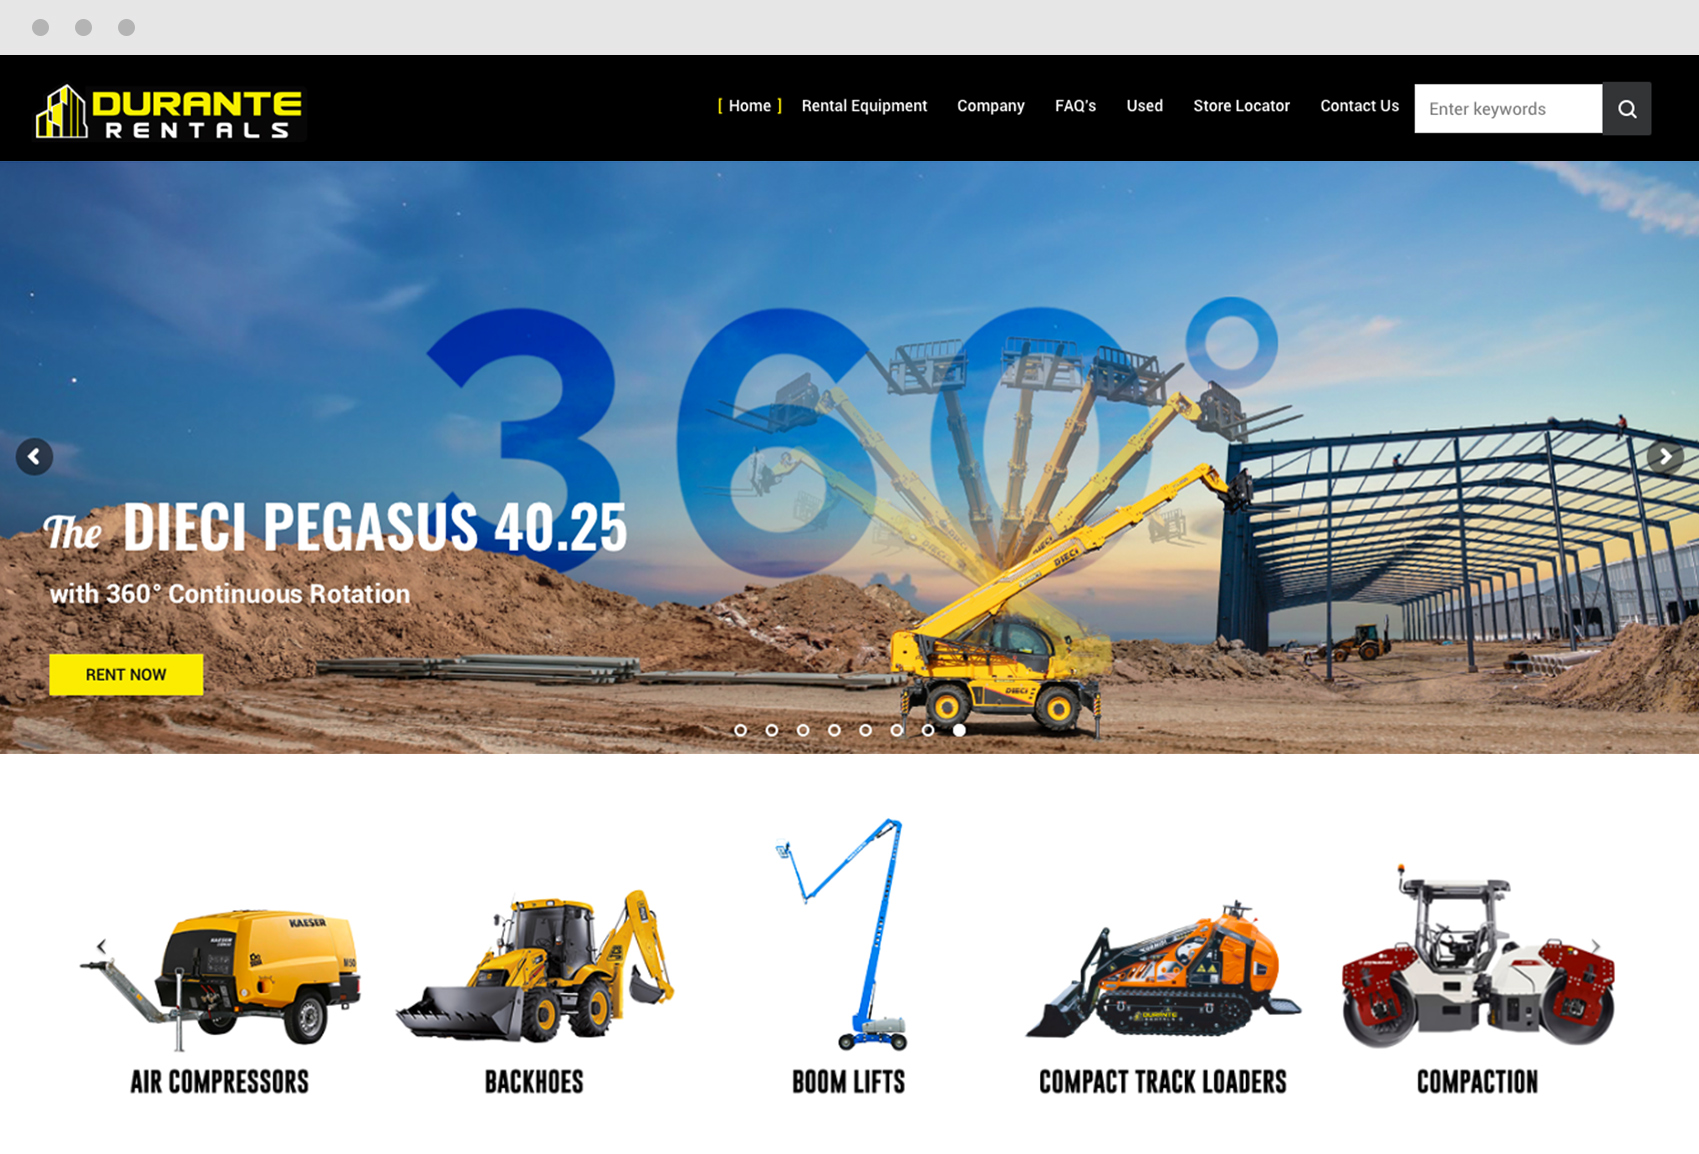 Construction Equipment Rental Company Website Design Durante Rentals